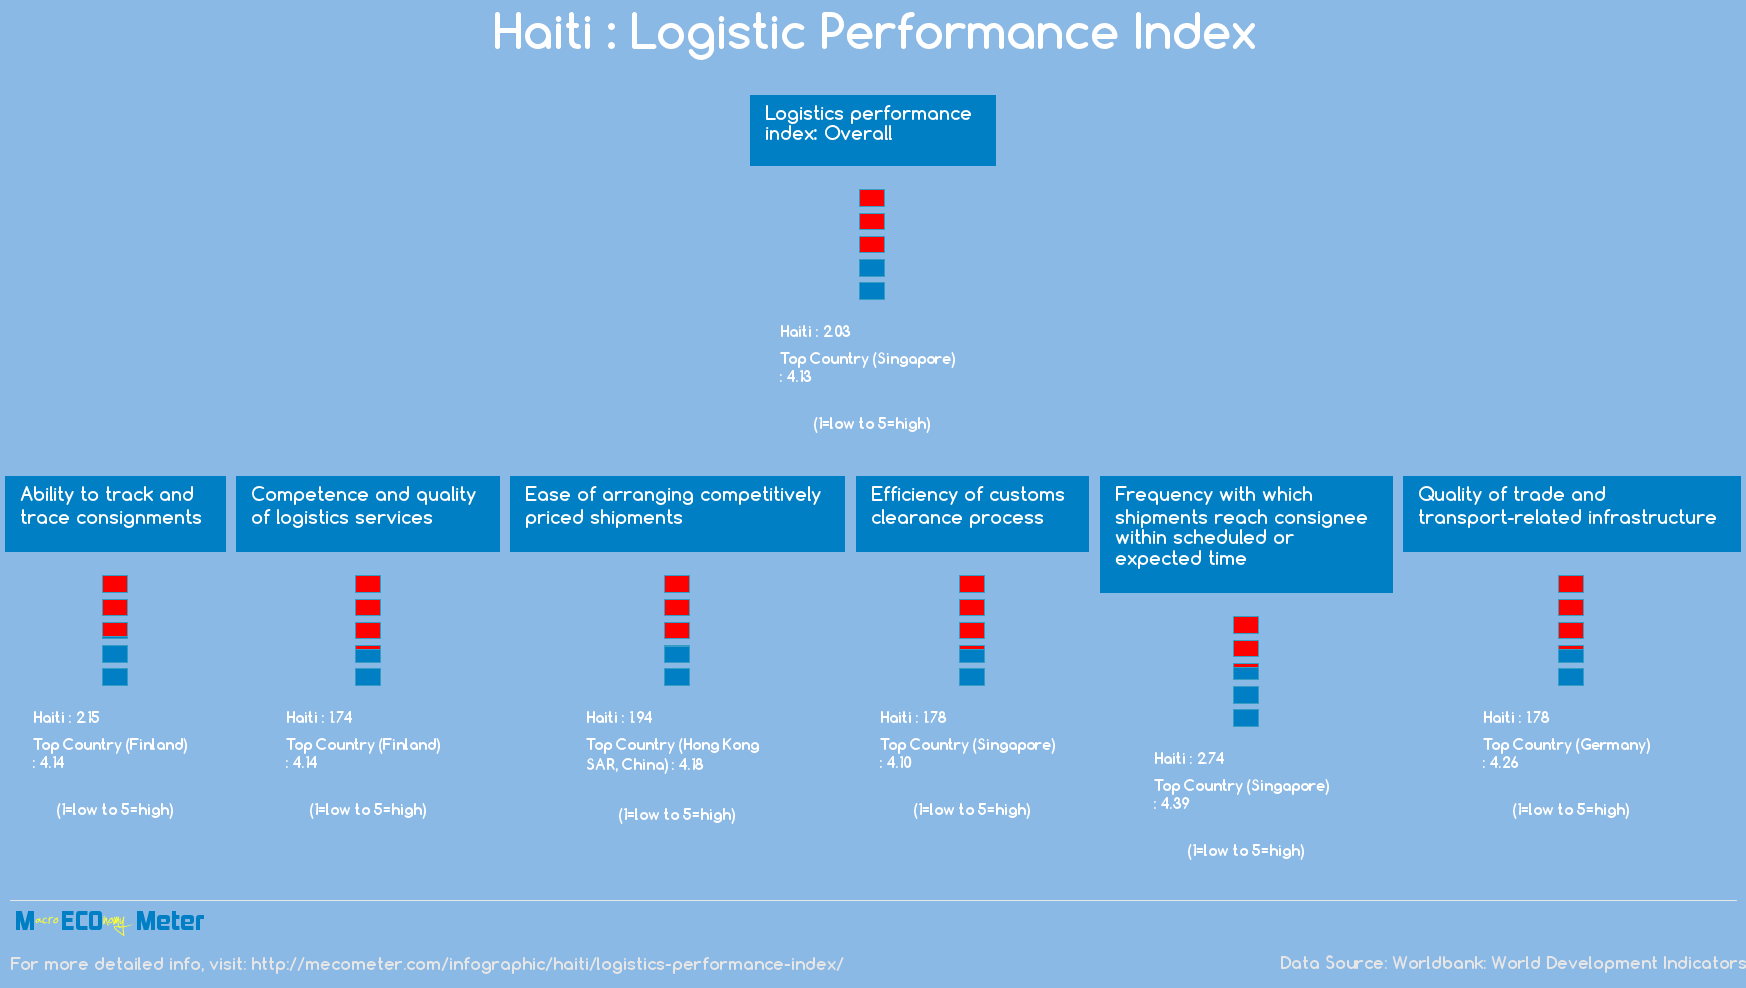 Haiti : Logistic Performance Index